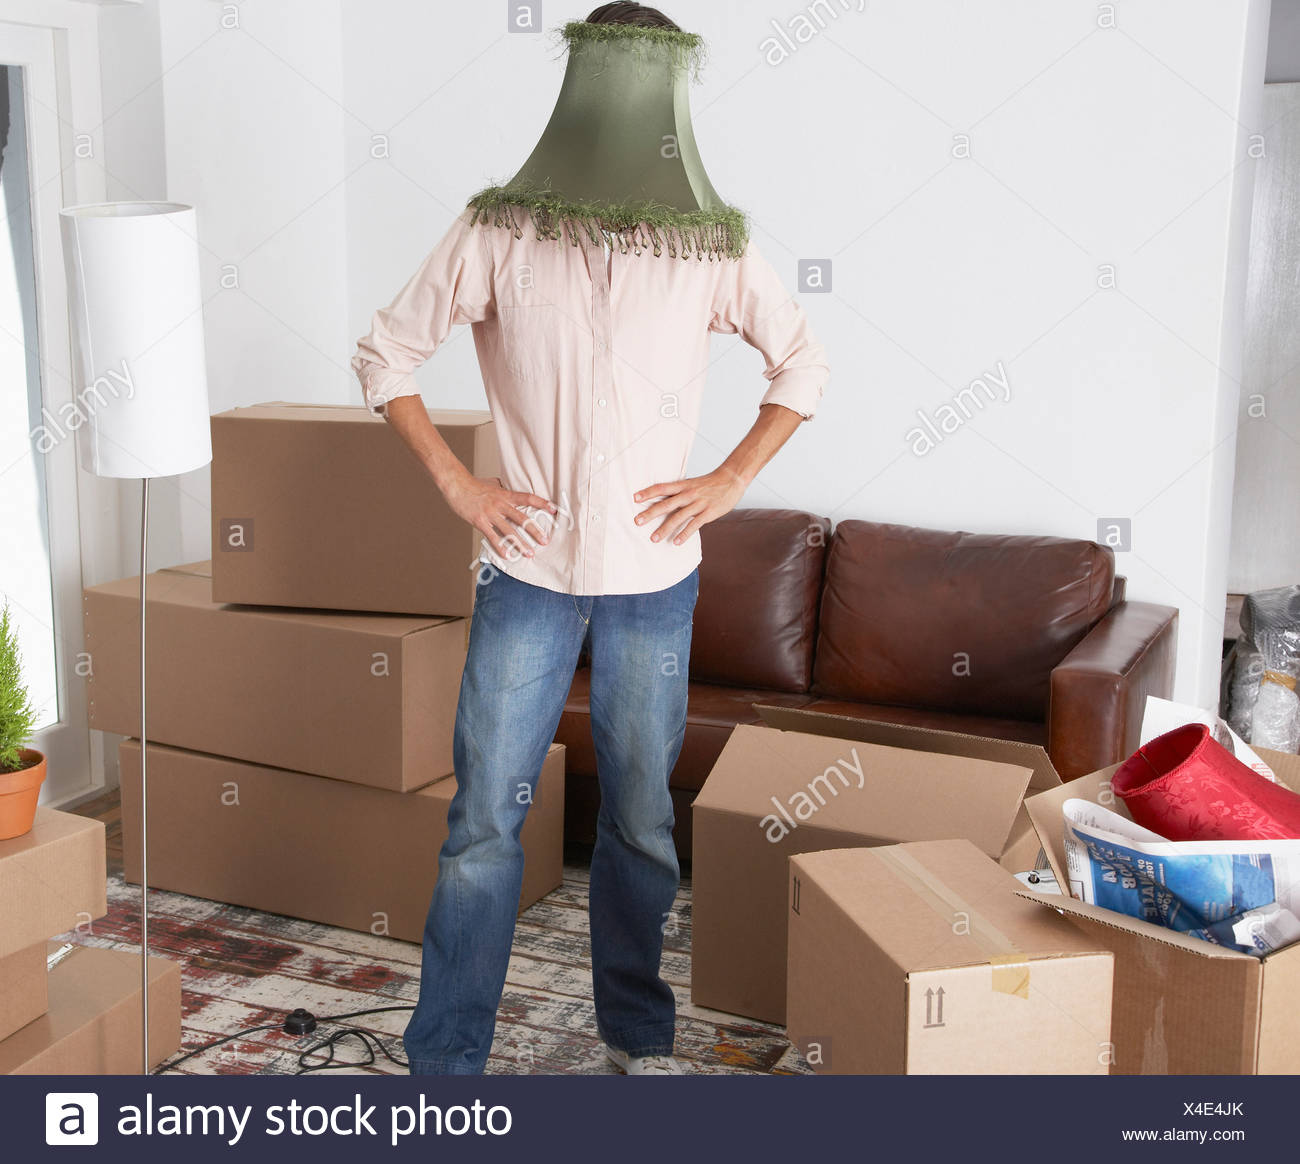 Lamp Shade On Head : Man with lamp shade on head in home cardboard boxes